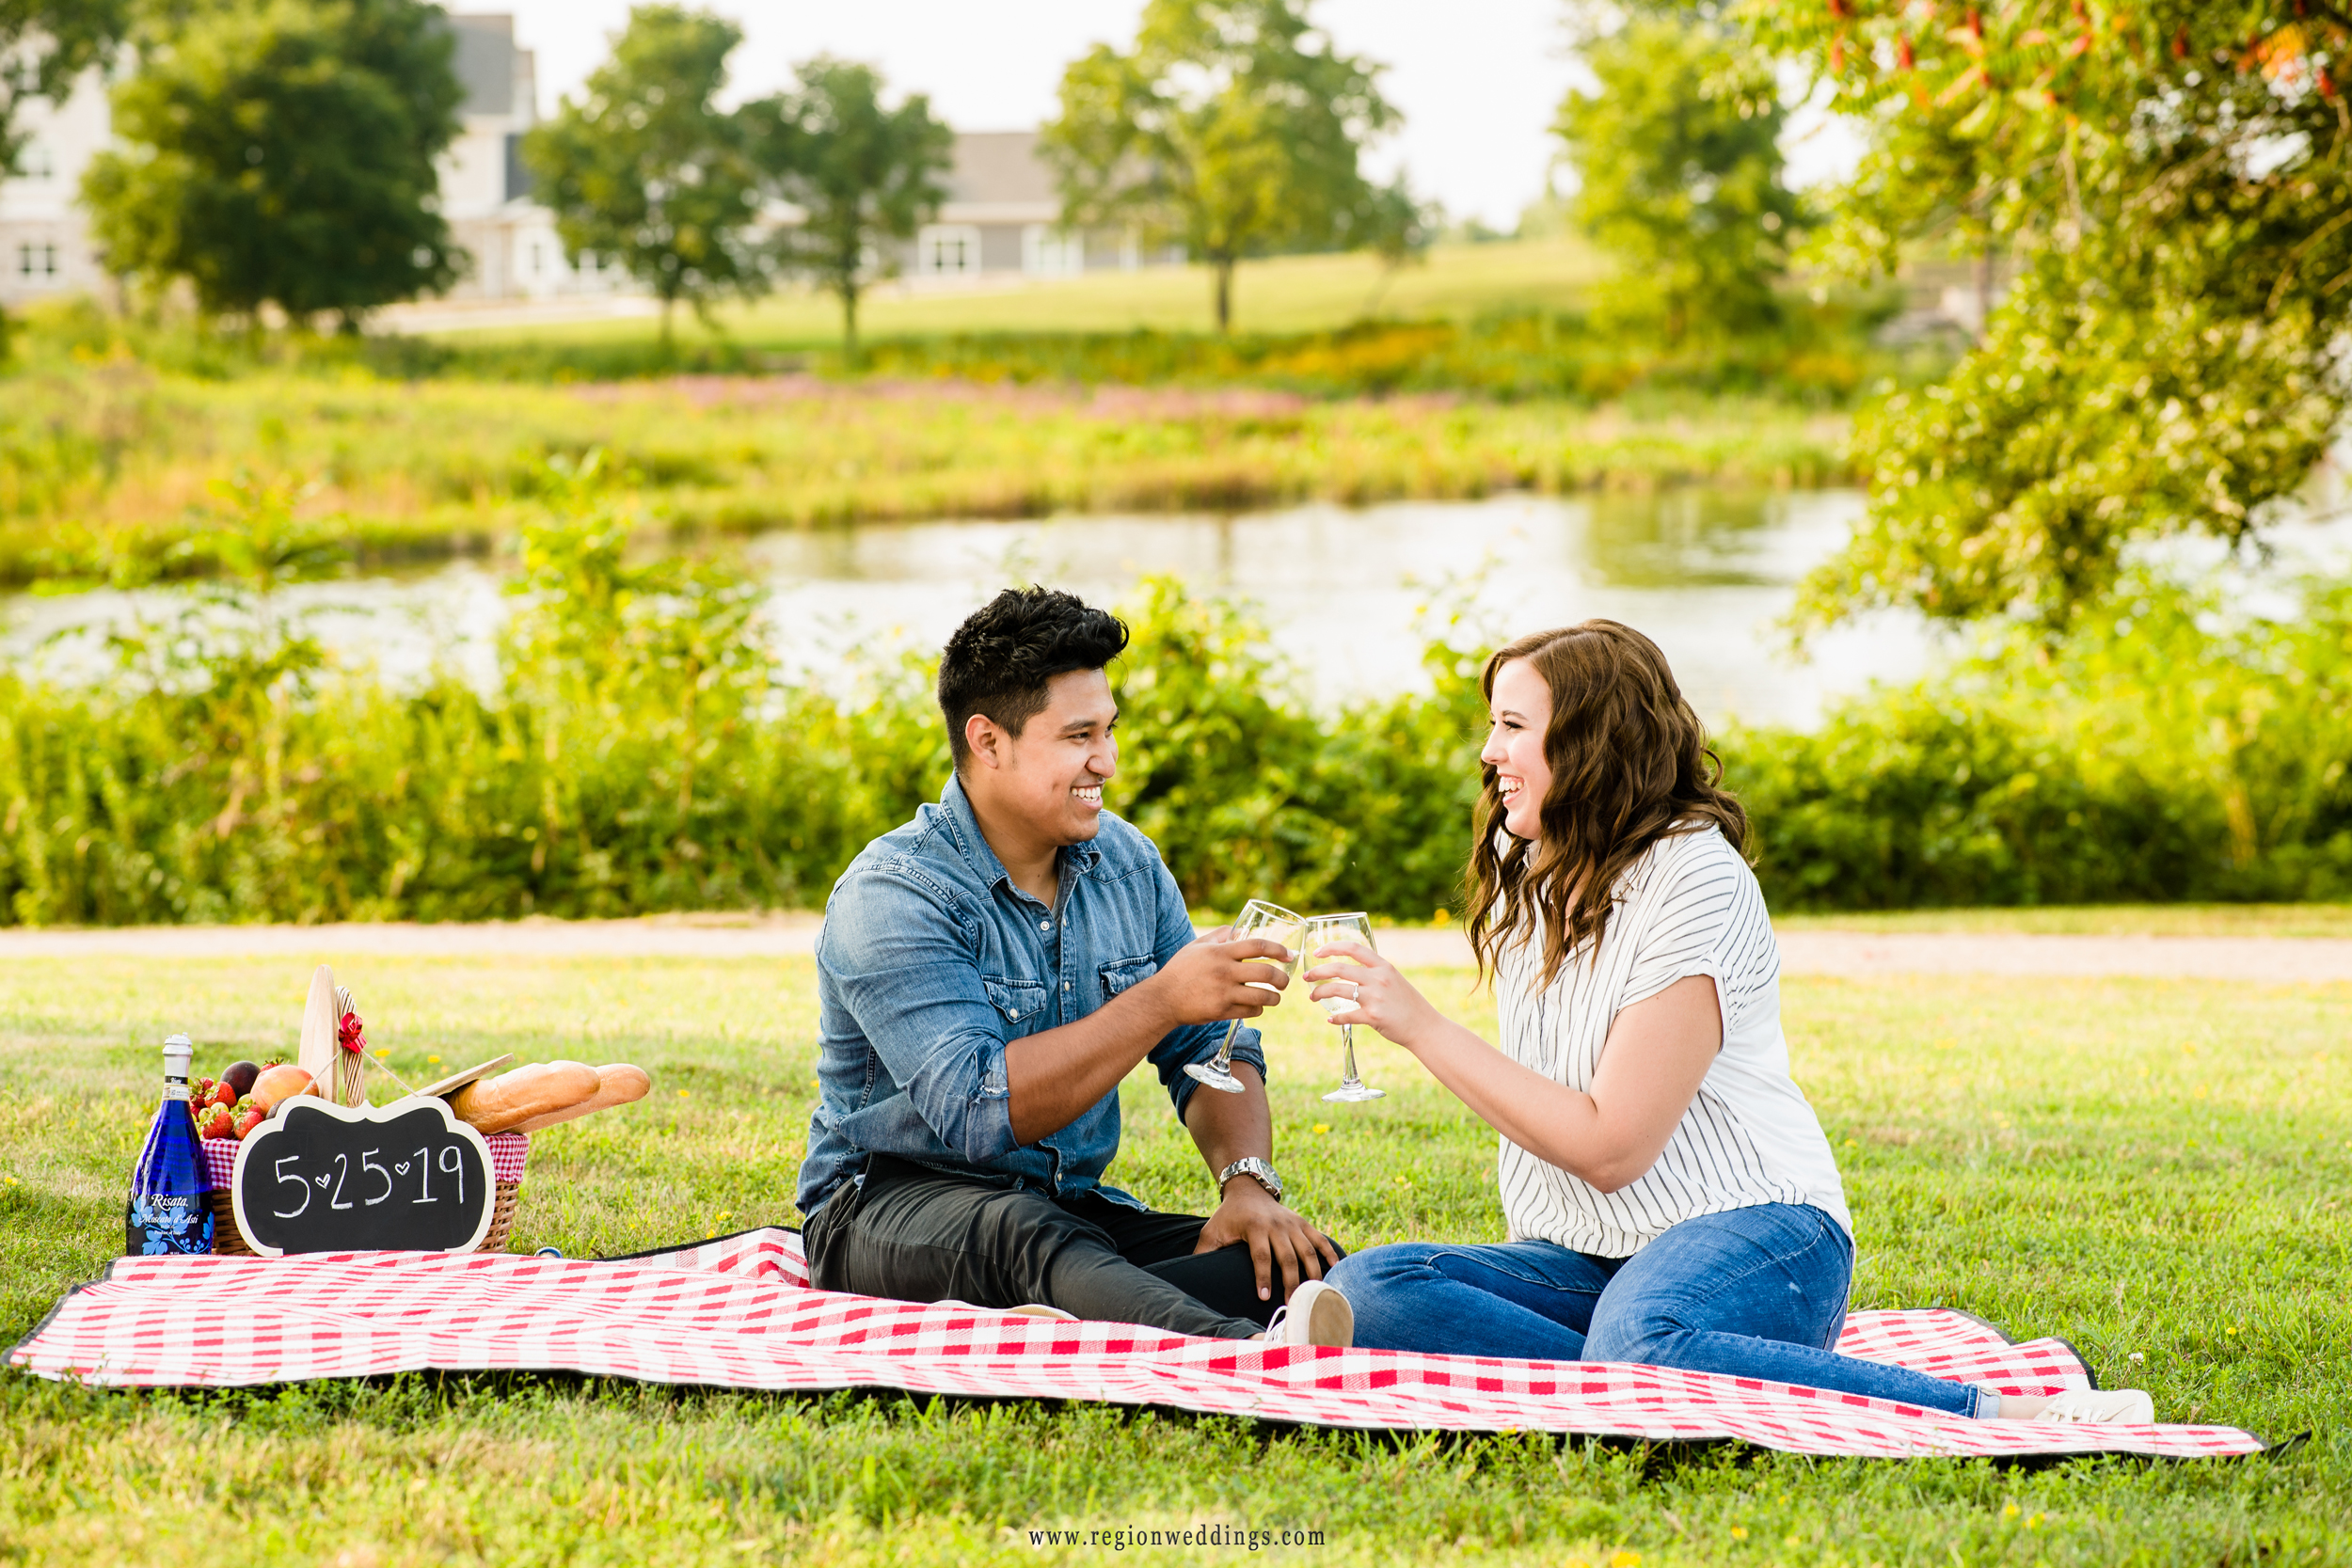 A young couple enjoys wine during their picnic at Coffee Creek Park.